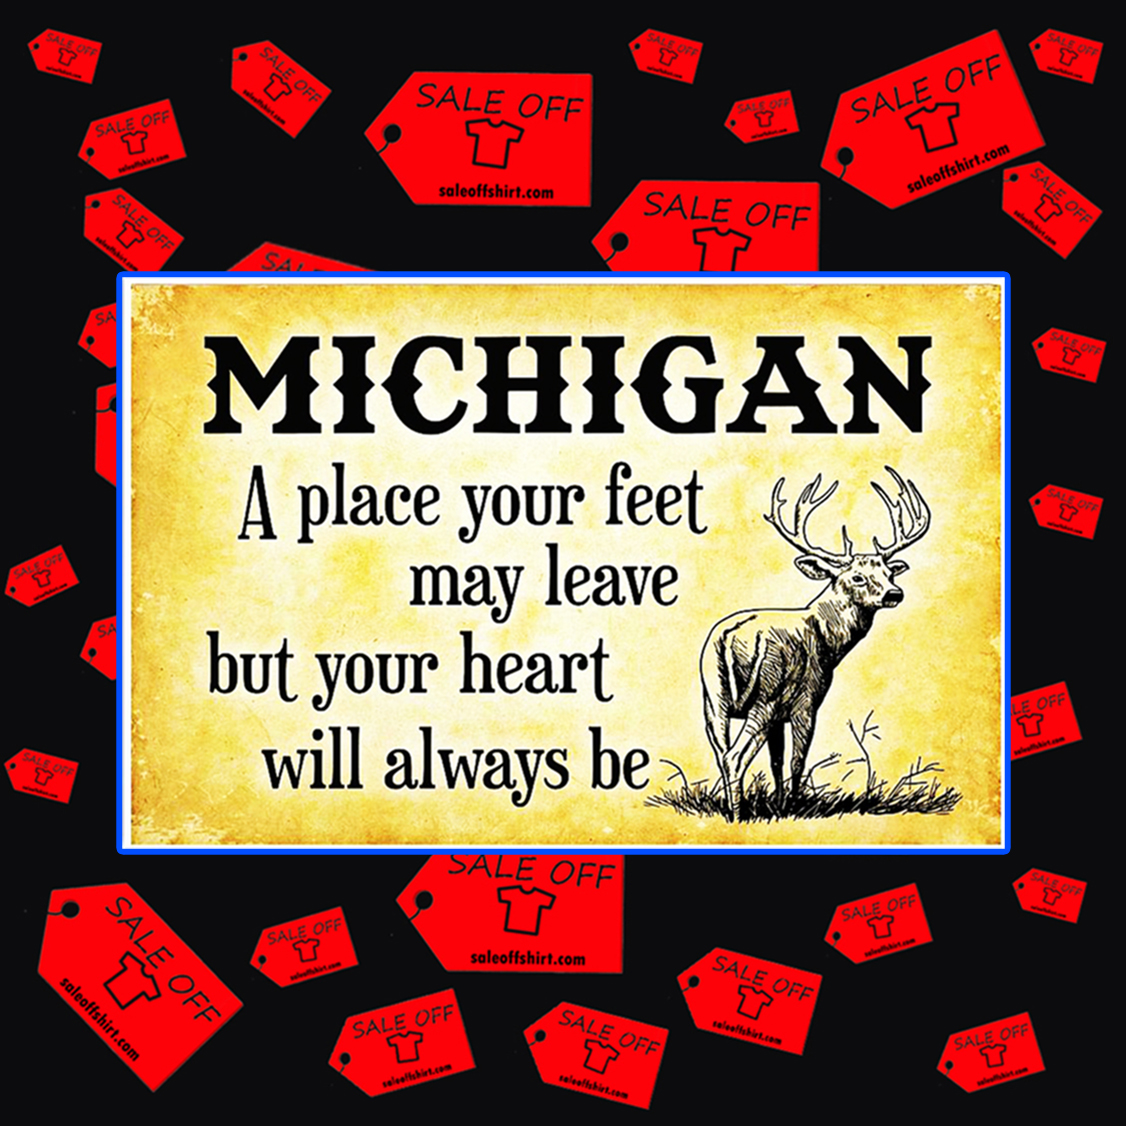 Michigan a place your feet may leave but your heart will always be poster 24x16